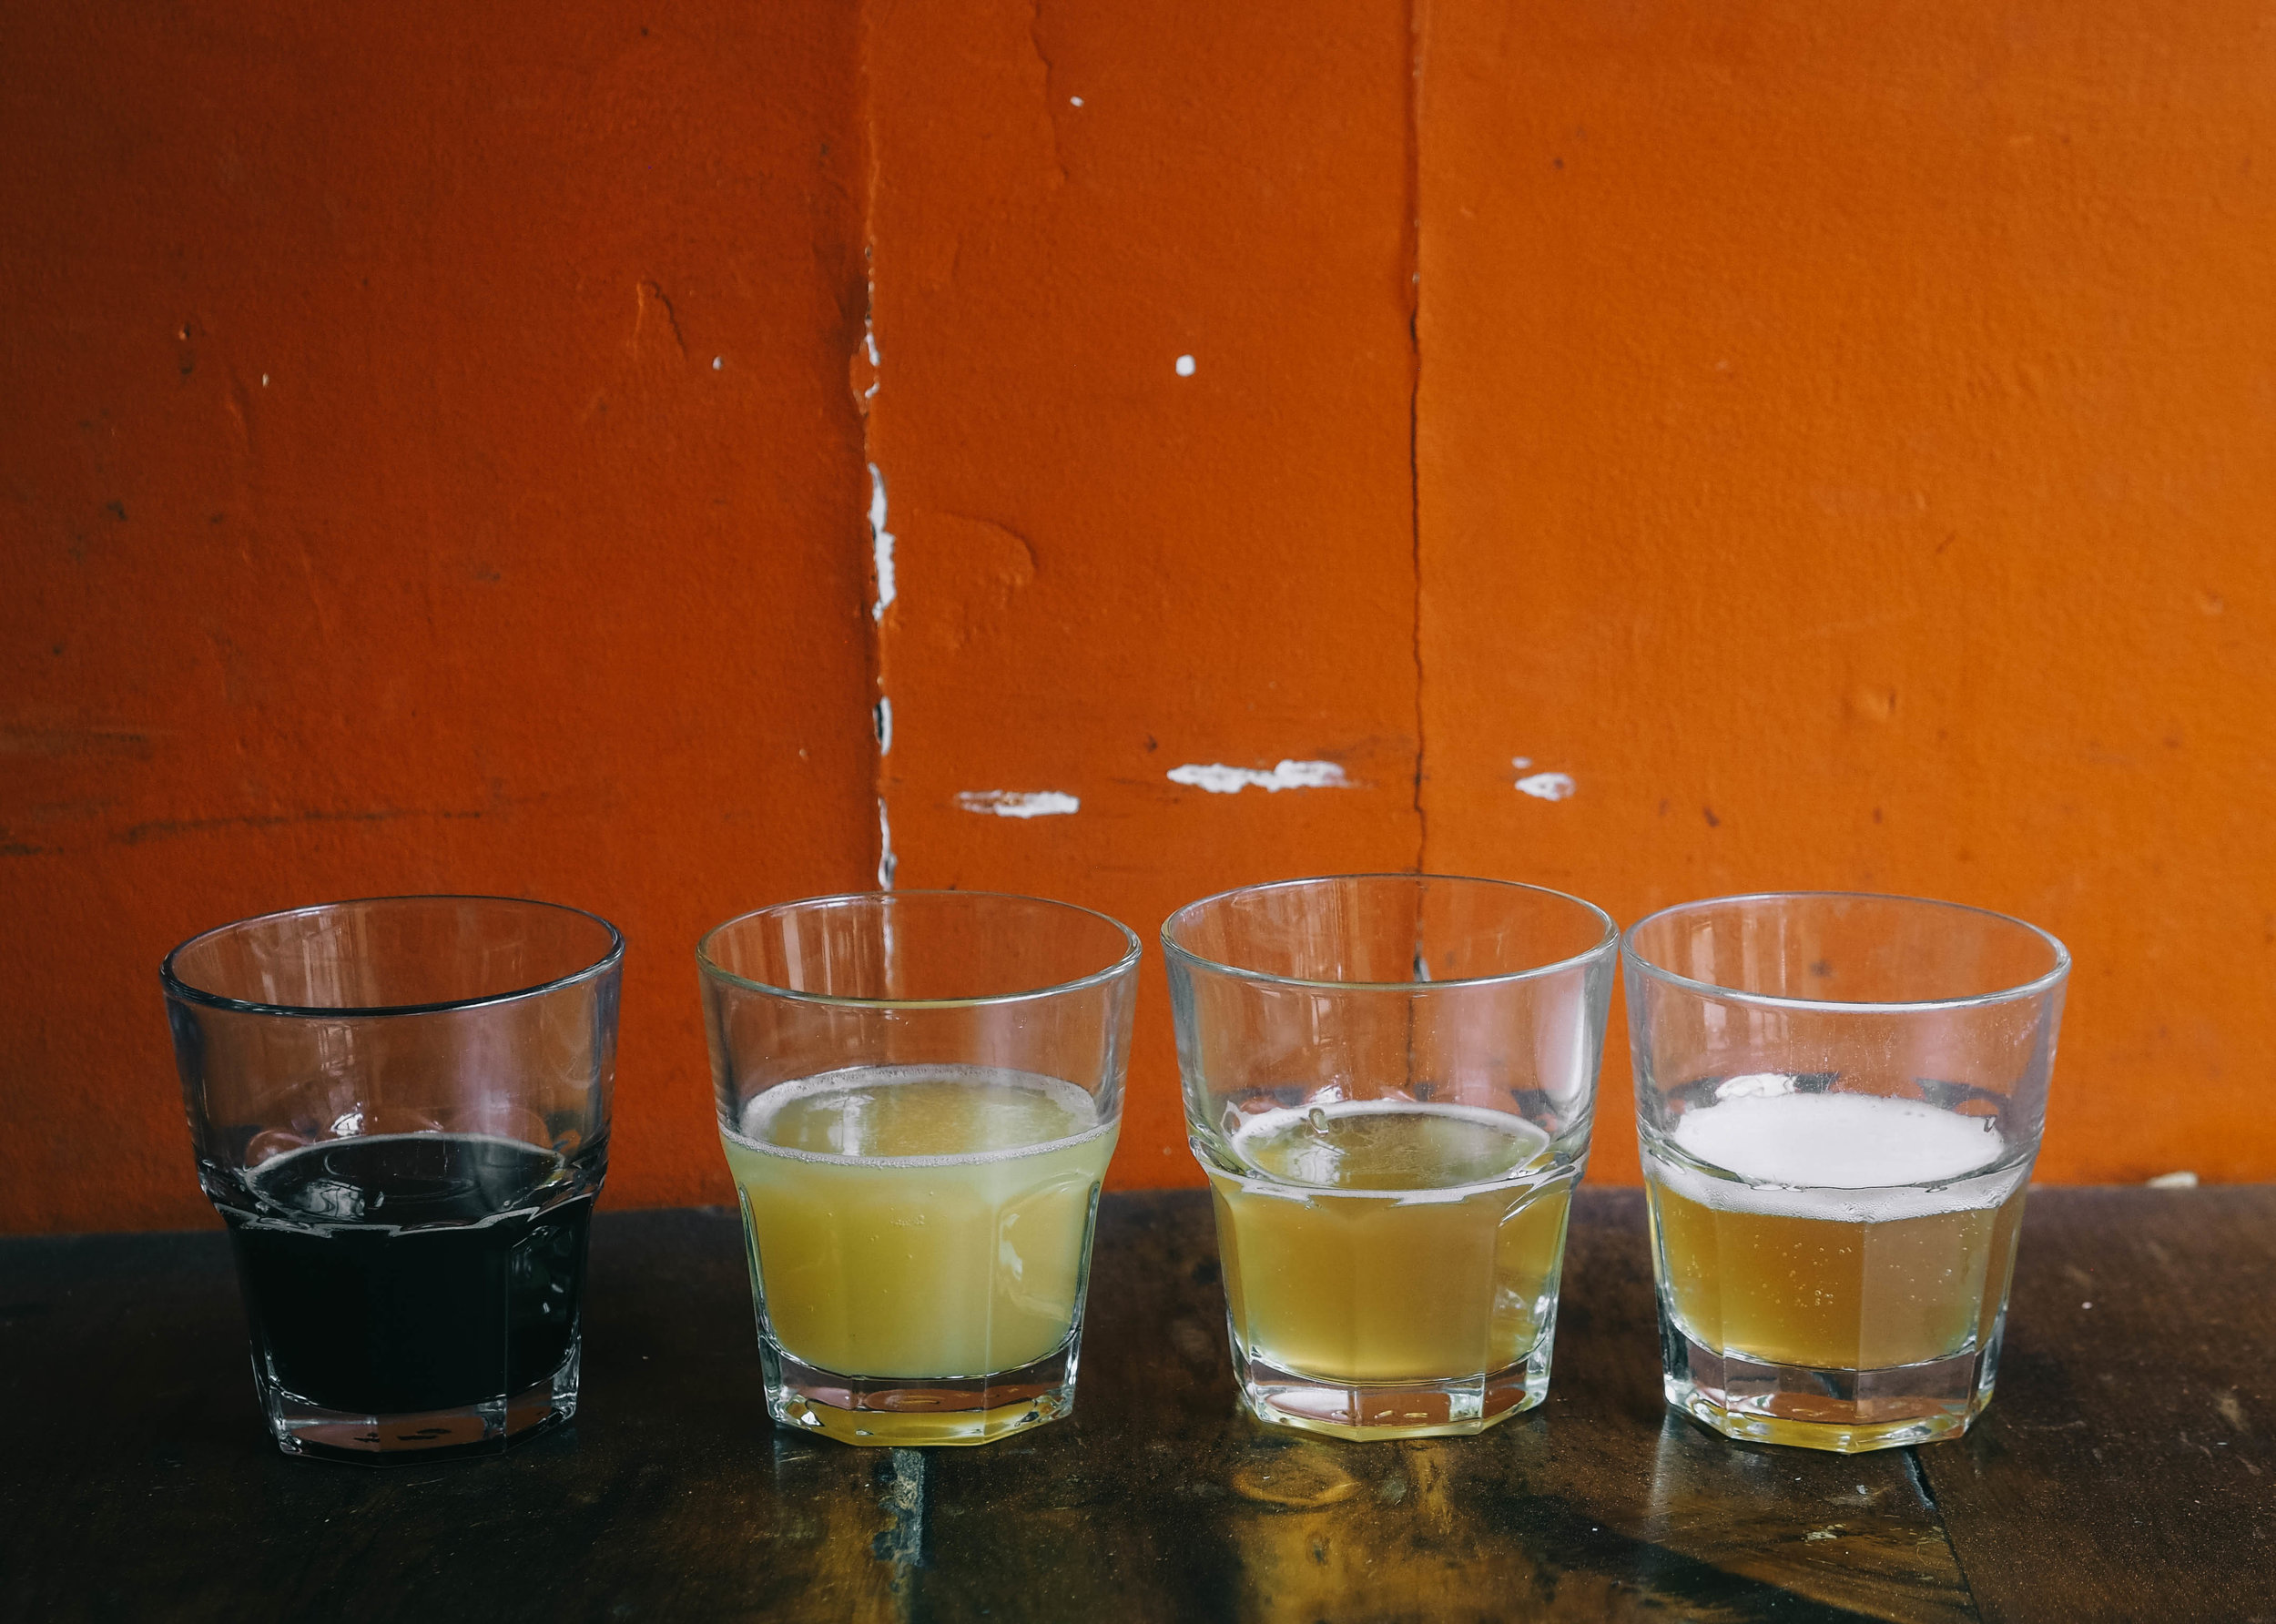 From left to right:  Granite City Brewery's Broad Axe, Bellwood Brewery's Jutsu, Folly Brewpub's Filed Day, High Road Brewery's Gose.